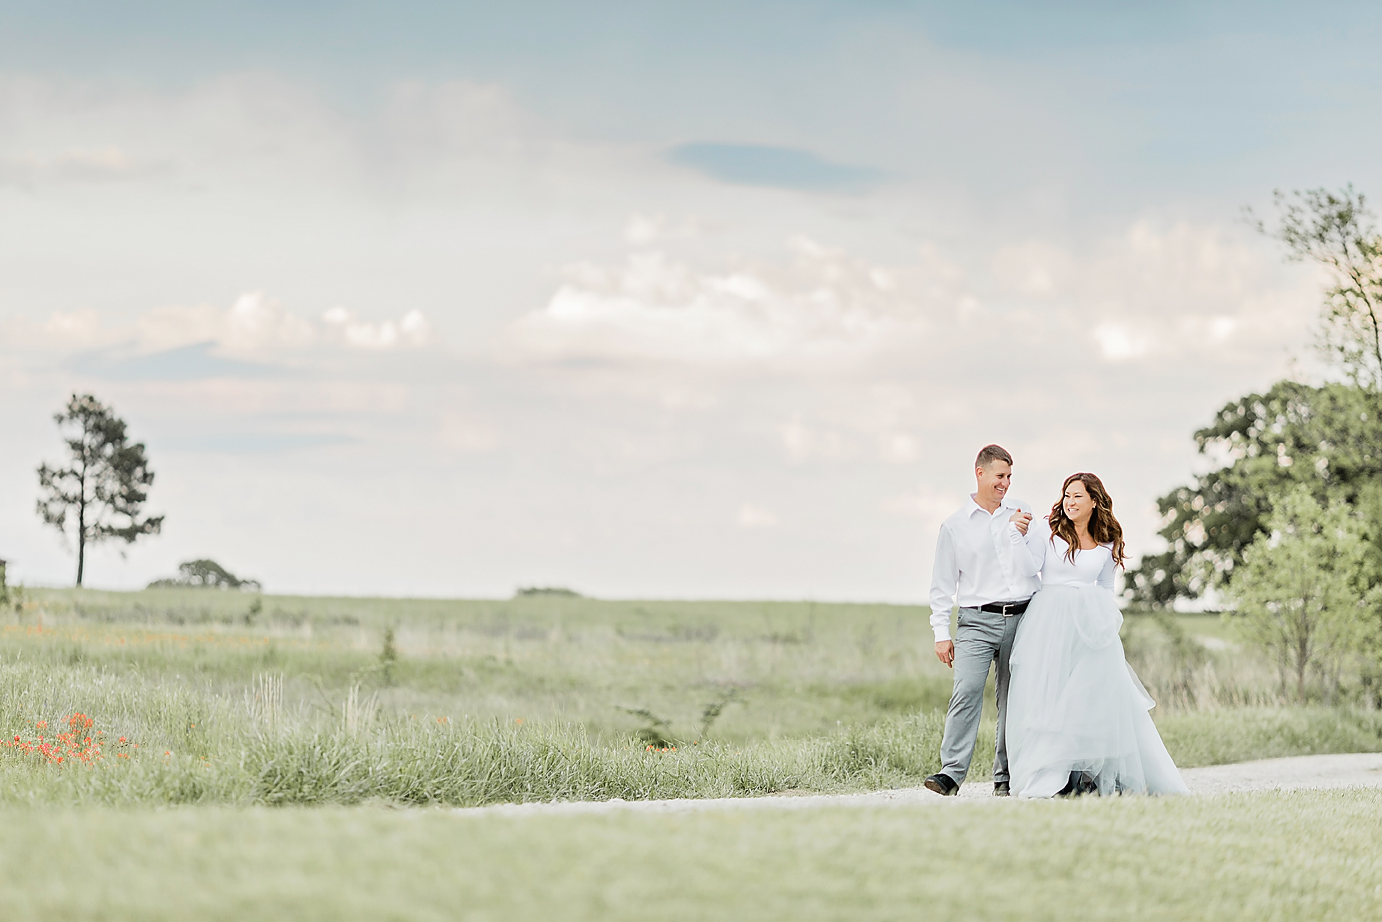 Dallas Wedding Photographer Flower Mound anniversary Photographer Kim Brett Texas Ranch Kate Marie Portraiture 10.png